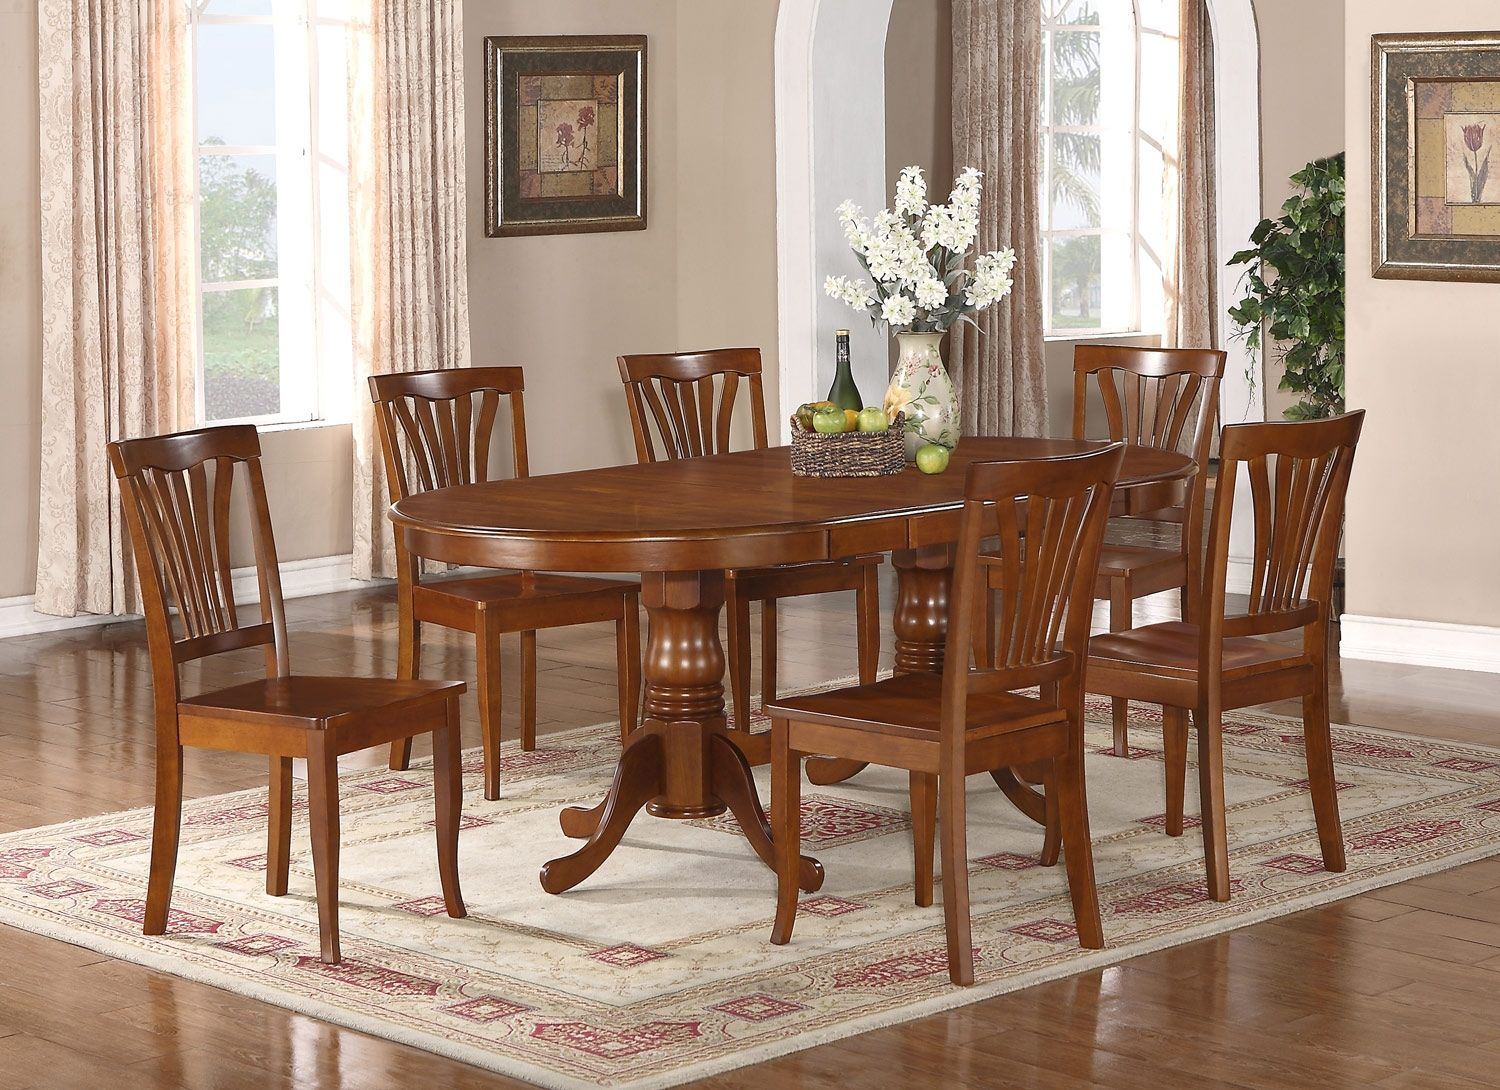 Kitchen Table With Leaf And 6 Chairs Oval Dining Room Table